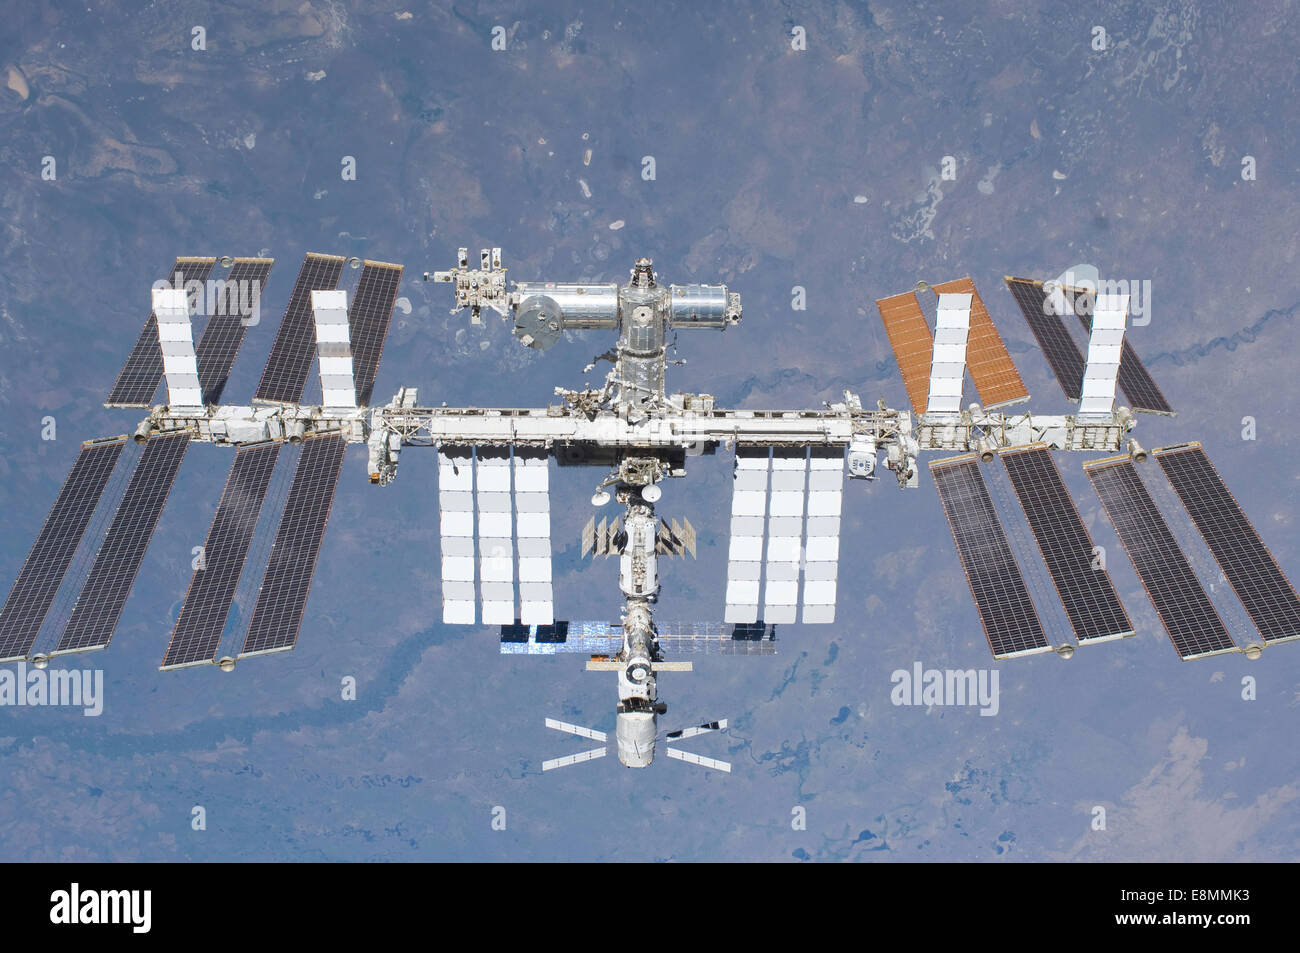 May 29, 2011 - The International Space Station. - Stock Image